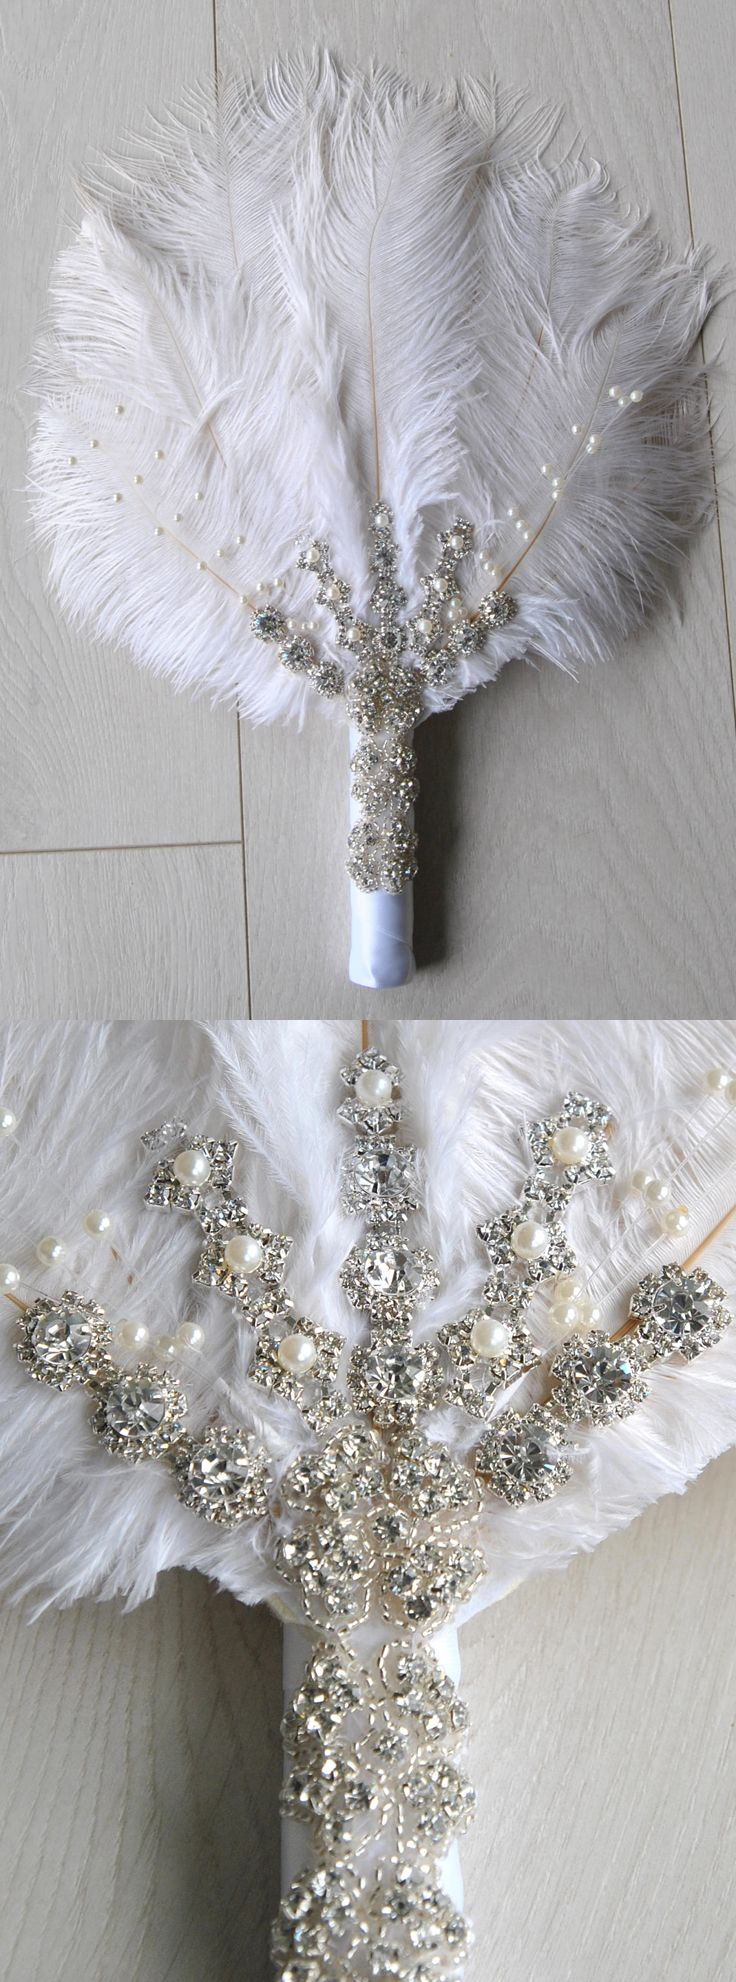 Bridal alternative Ostrich Feather Fan Bouquet Great Gatsby 1920s Art deco boho wedding. Downton Abbey Roaring 20s Party theme. Birthday, Weddings, Christmas Party ideas. Boutonniere for men available. #weddings #gatsby #roaring20s #gatsbyparty #affiliatelink #featherfan #bouquet #etsyfinds